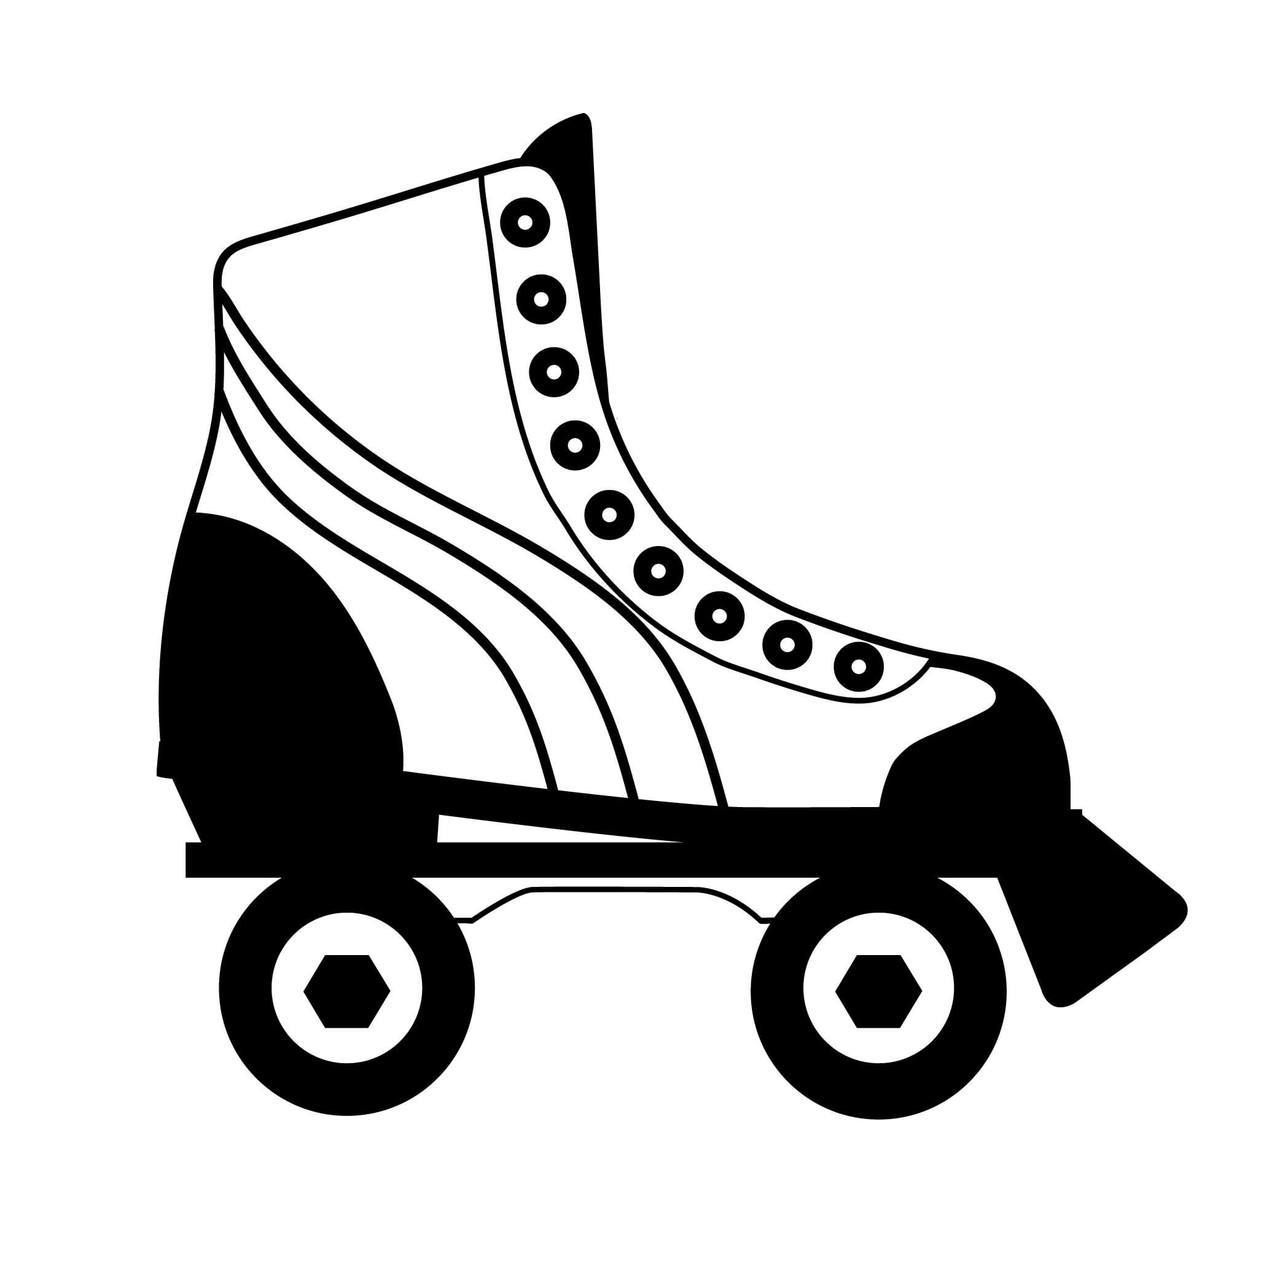 free roller skate svg cut file svg cut files for the silhouette cameo and cricut craftables fast shipping responsive customer service  [ 1280 x 1280 Pixel ]